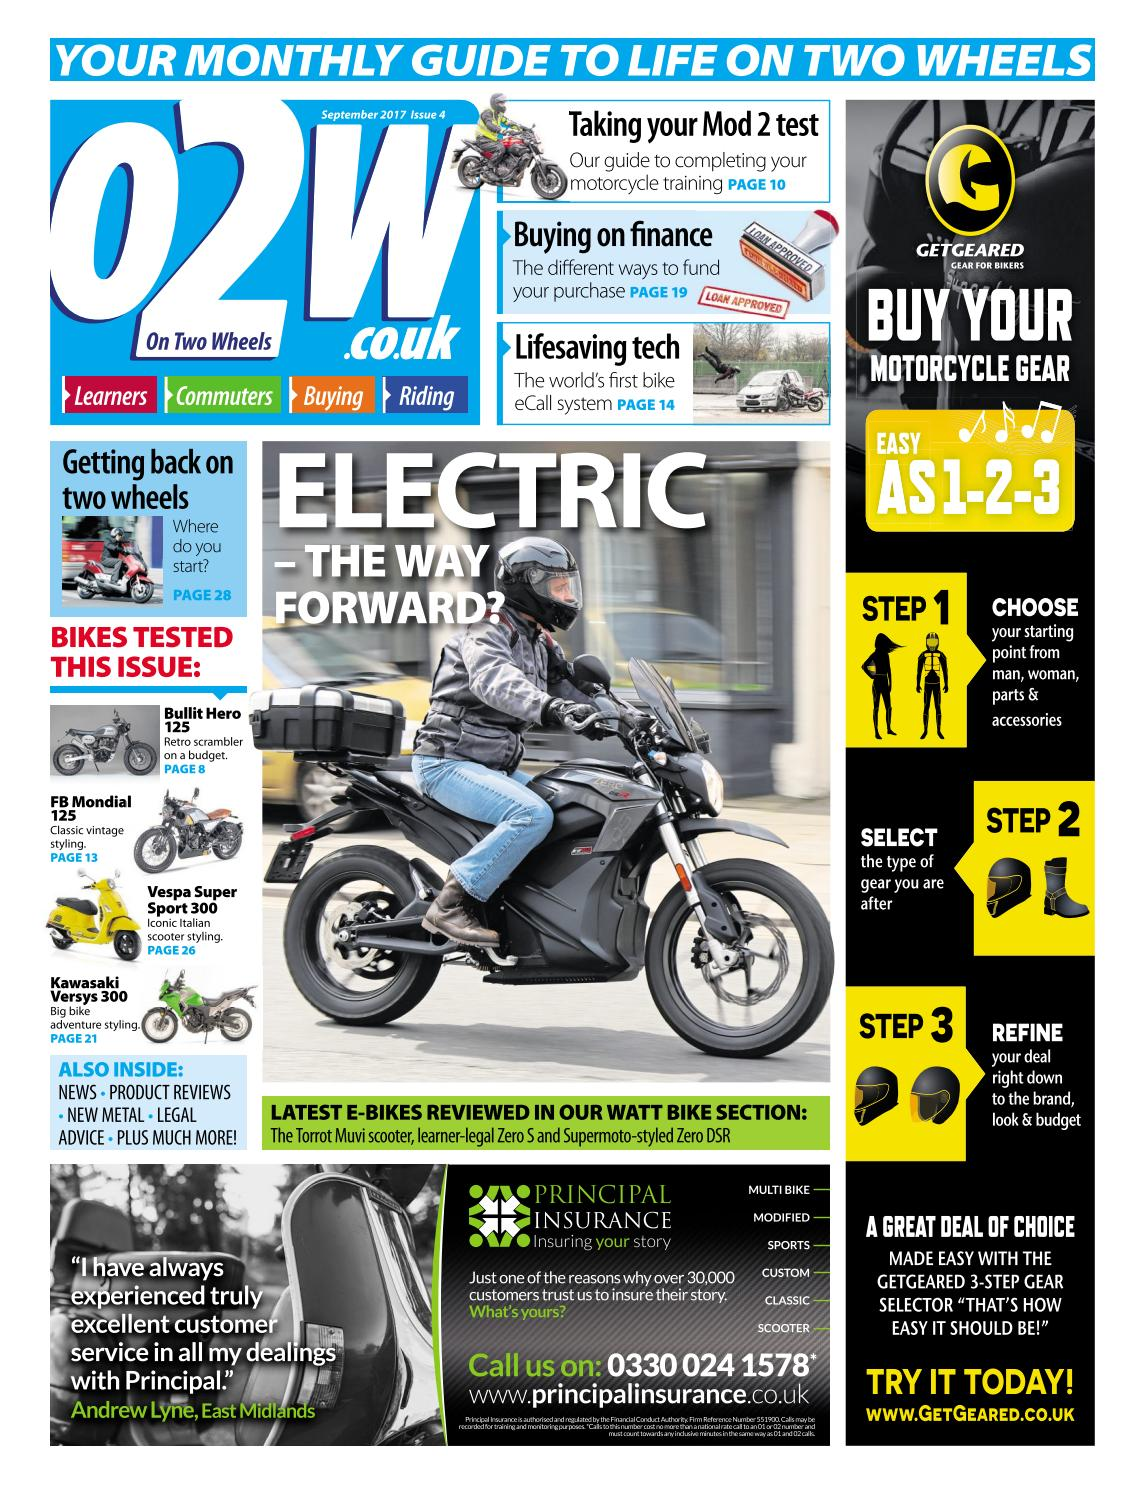 On Two Wheels - Issue 4 by Mortons Media Group Ltd - issuu